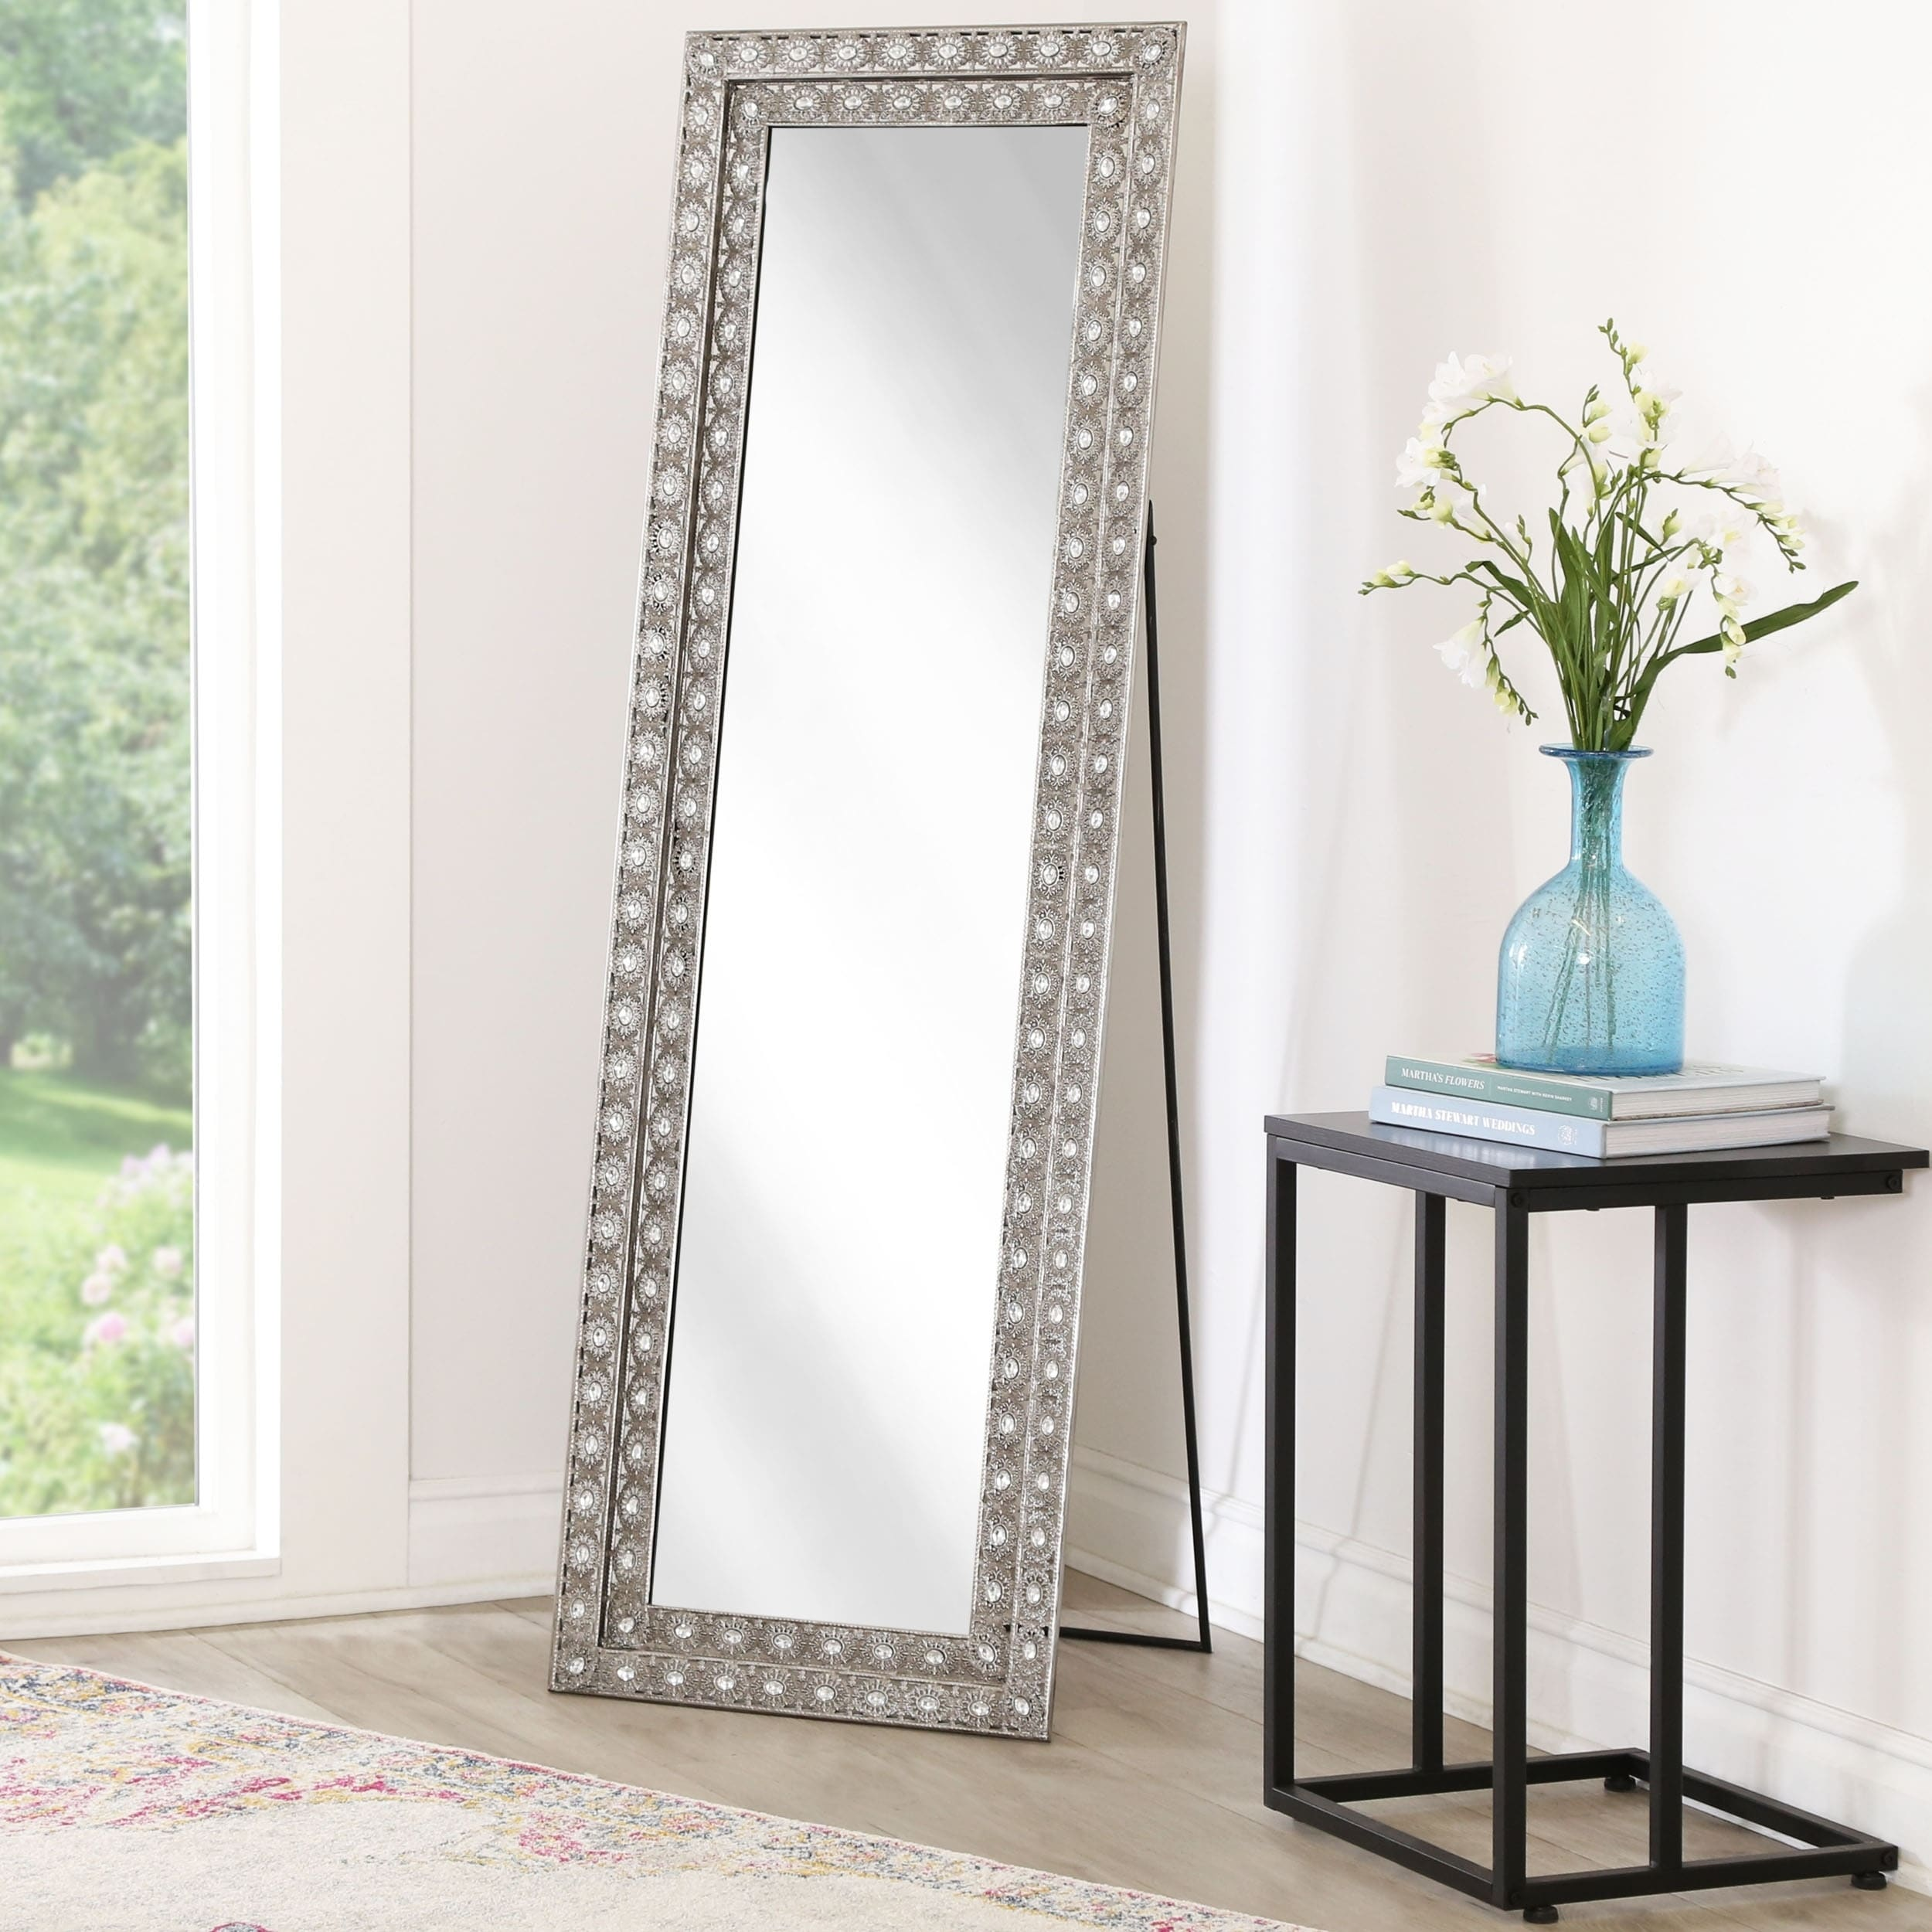 Acrylic Mirror Sydney Buy Mirrors Online At Overstock Our Best Decorative Accessories